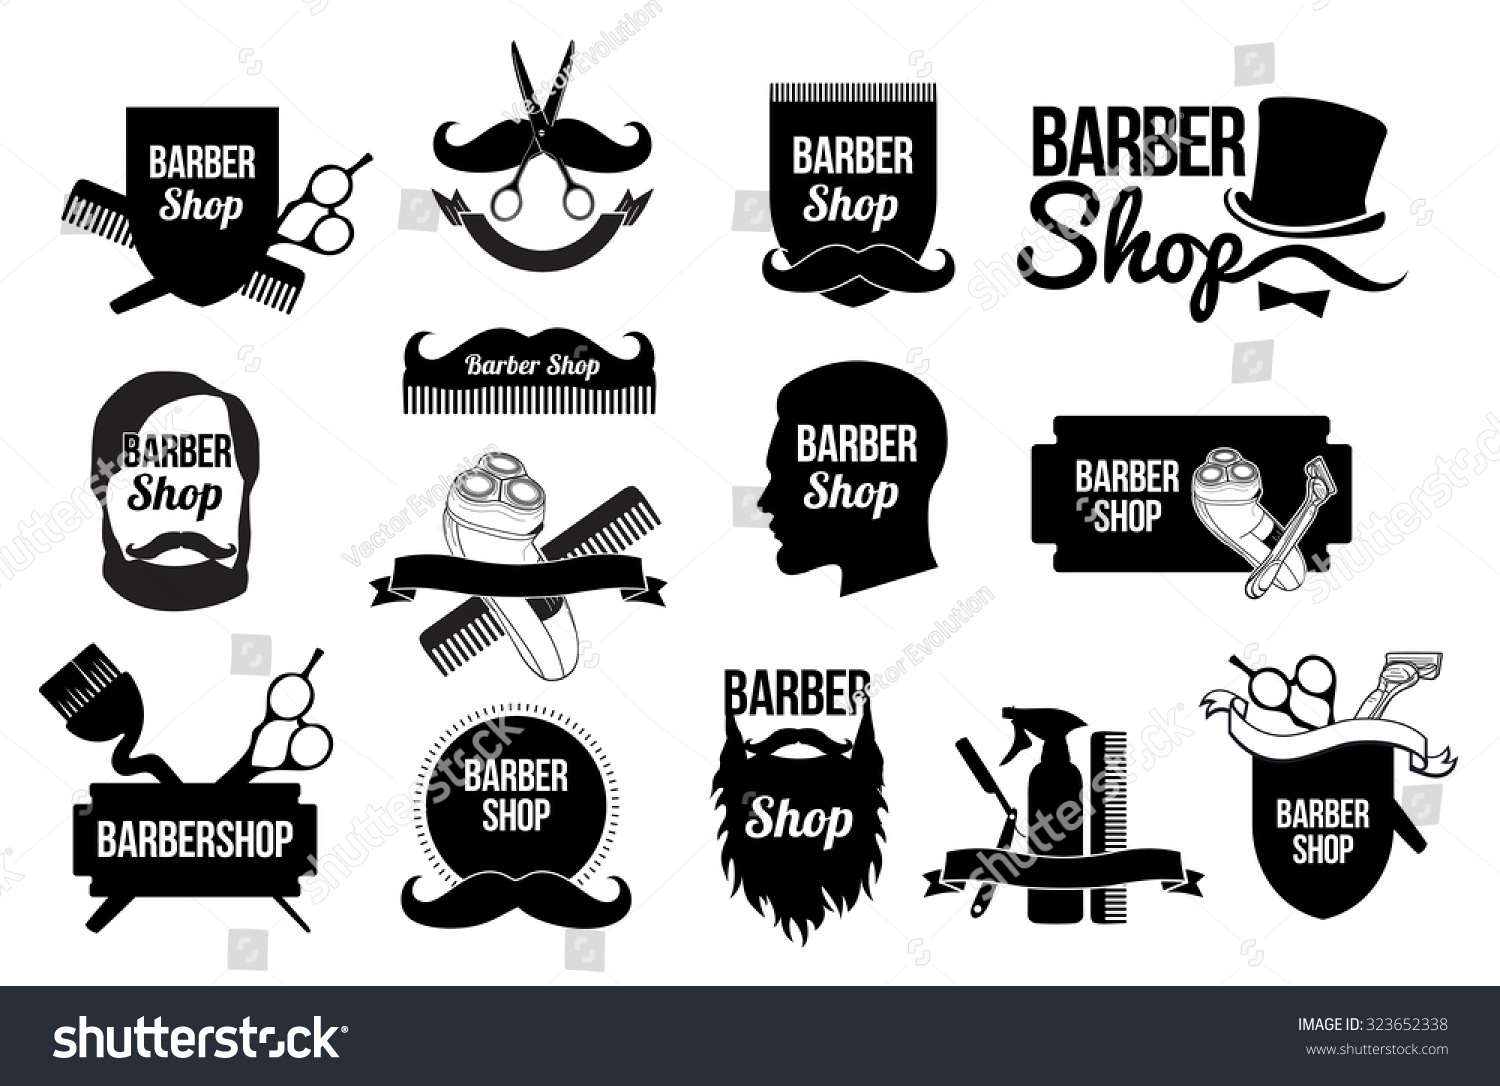 Set Of Barber Shop Logos And Designs Blank Form For The Hairdresser Scissors Straight Razors